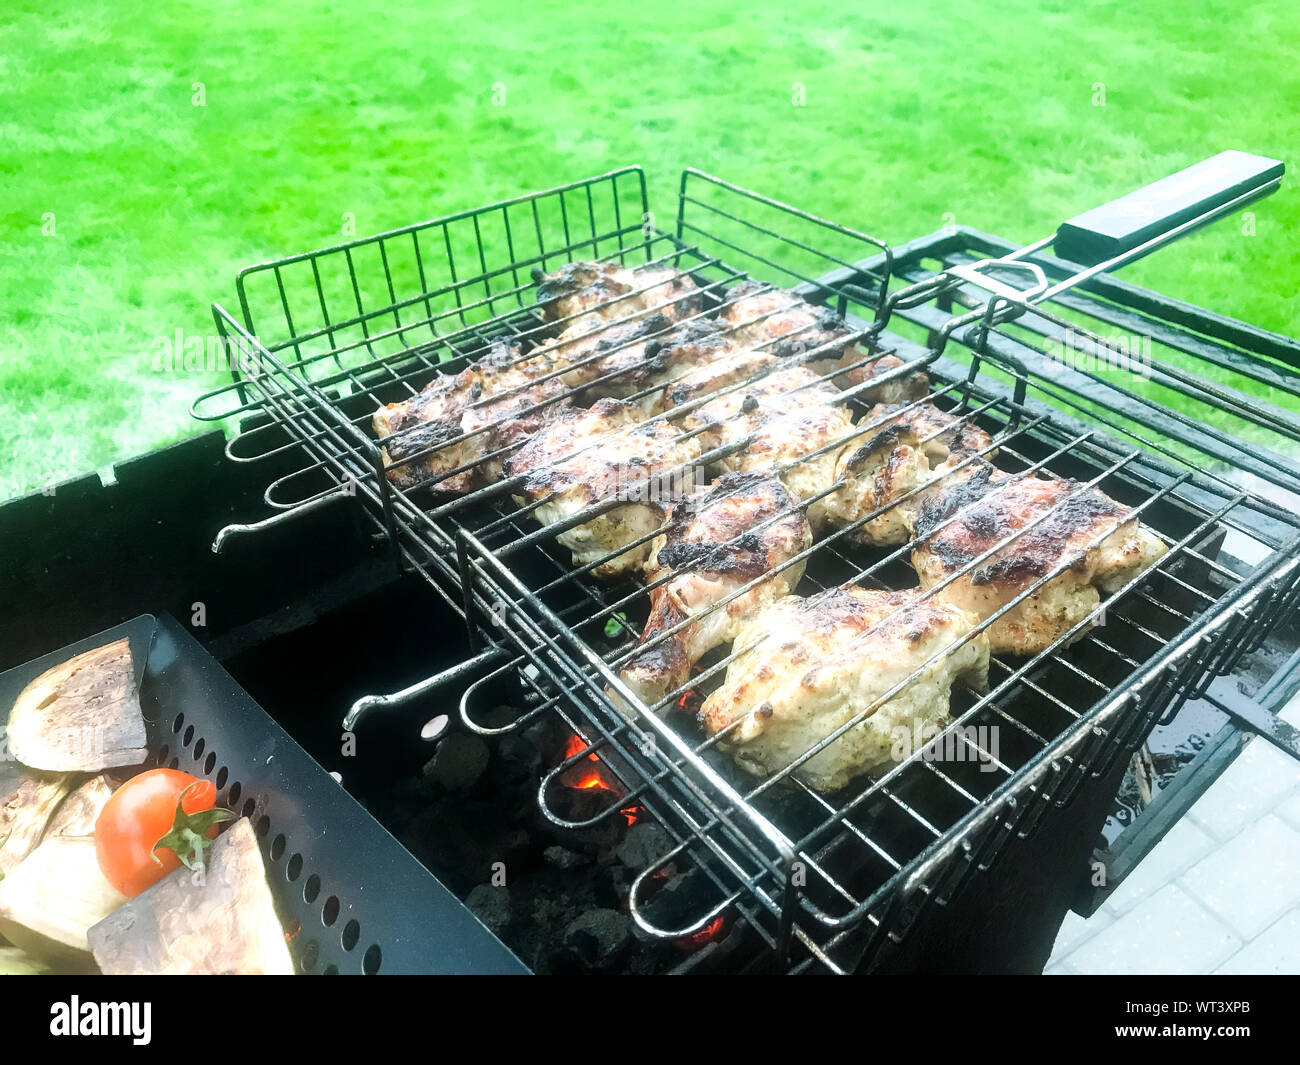 Chunks of meat and vegetables are grilled. Studio Photo Stock Photo